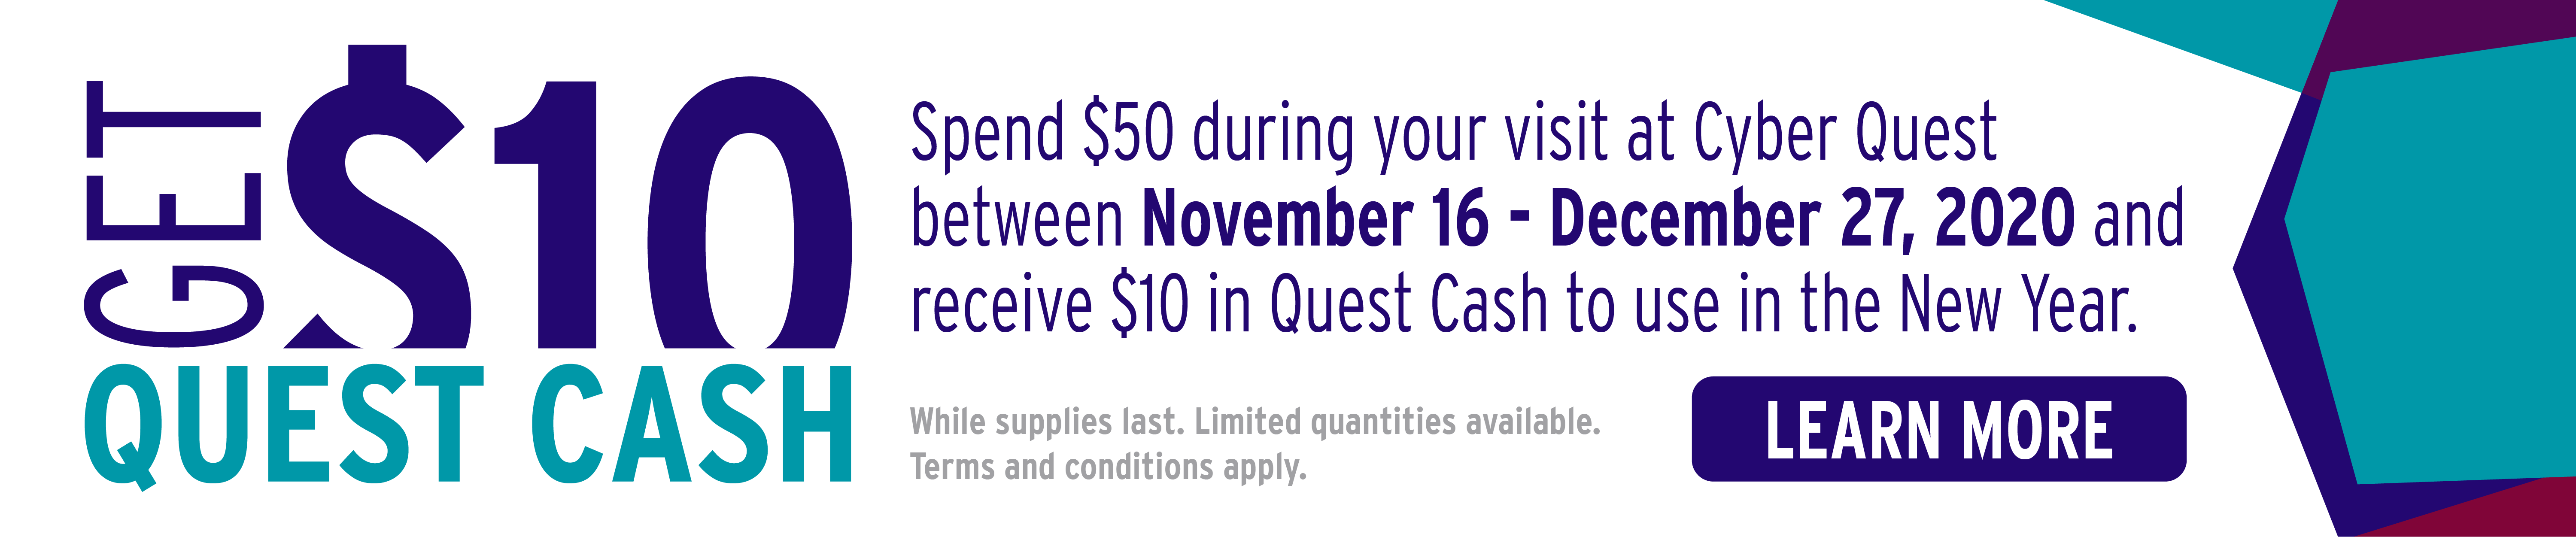 Quest Cash at Cyber Quest